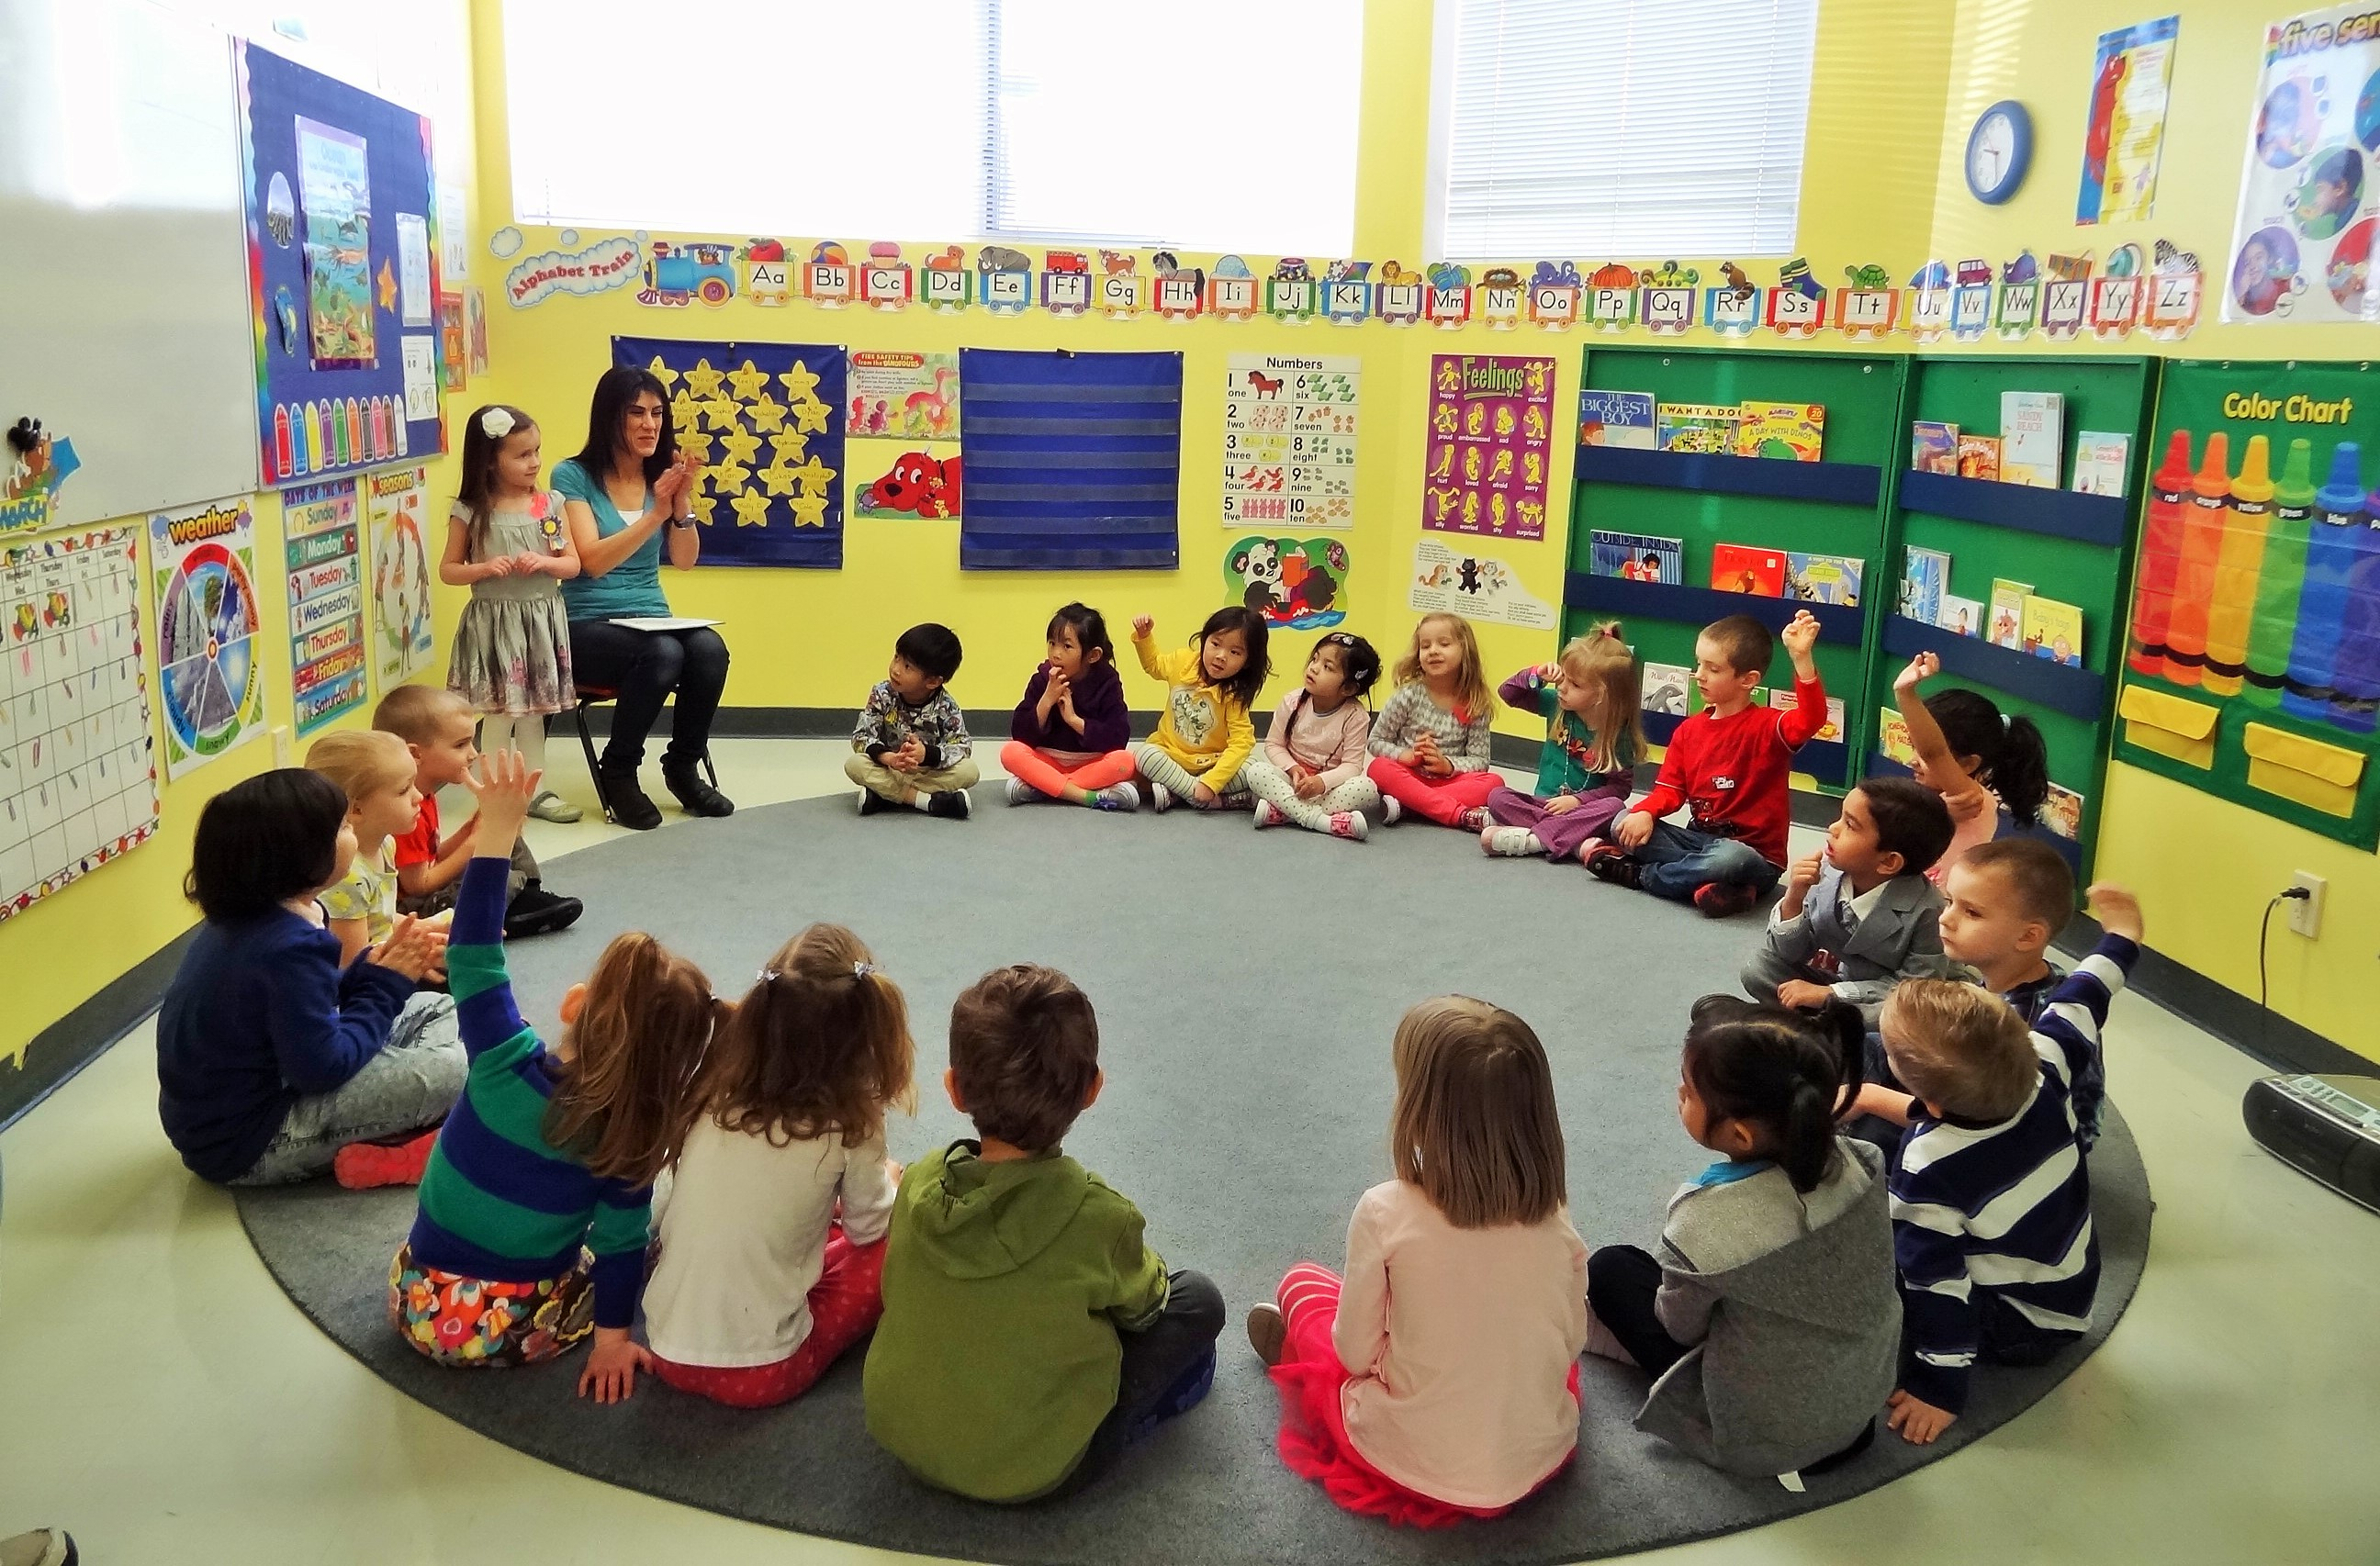 An image of a class having circle time with a teacher